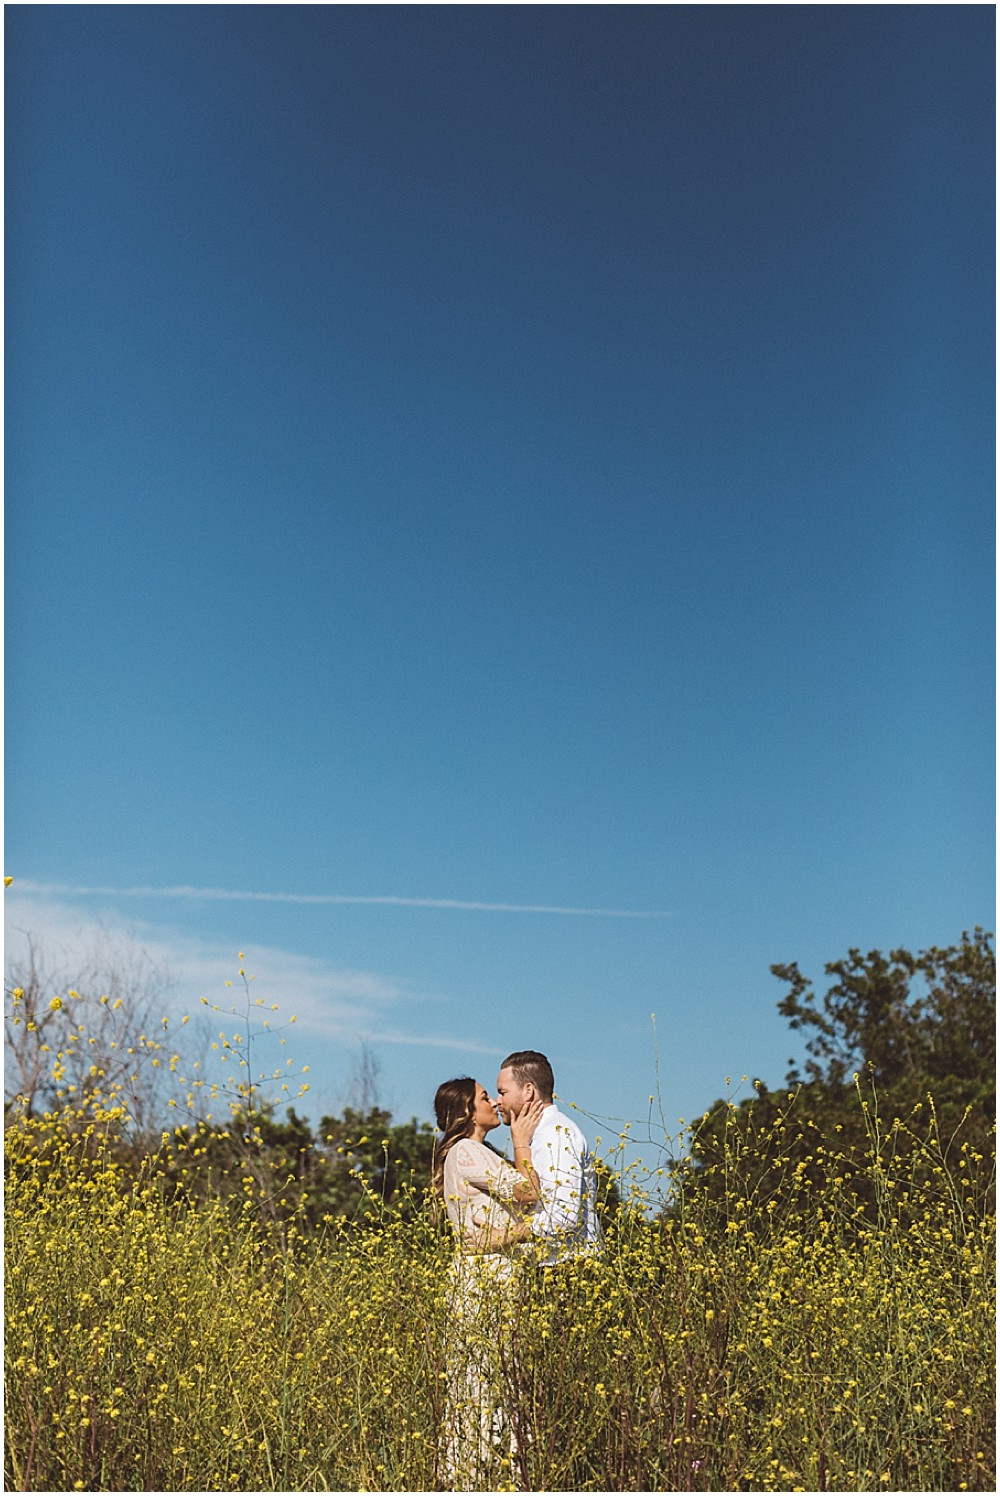 Robert+Ashley_stevecowellphoto_0011.jpg